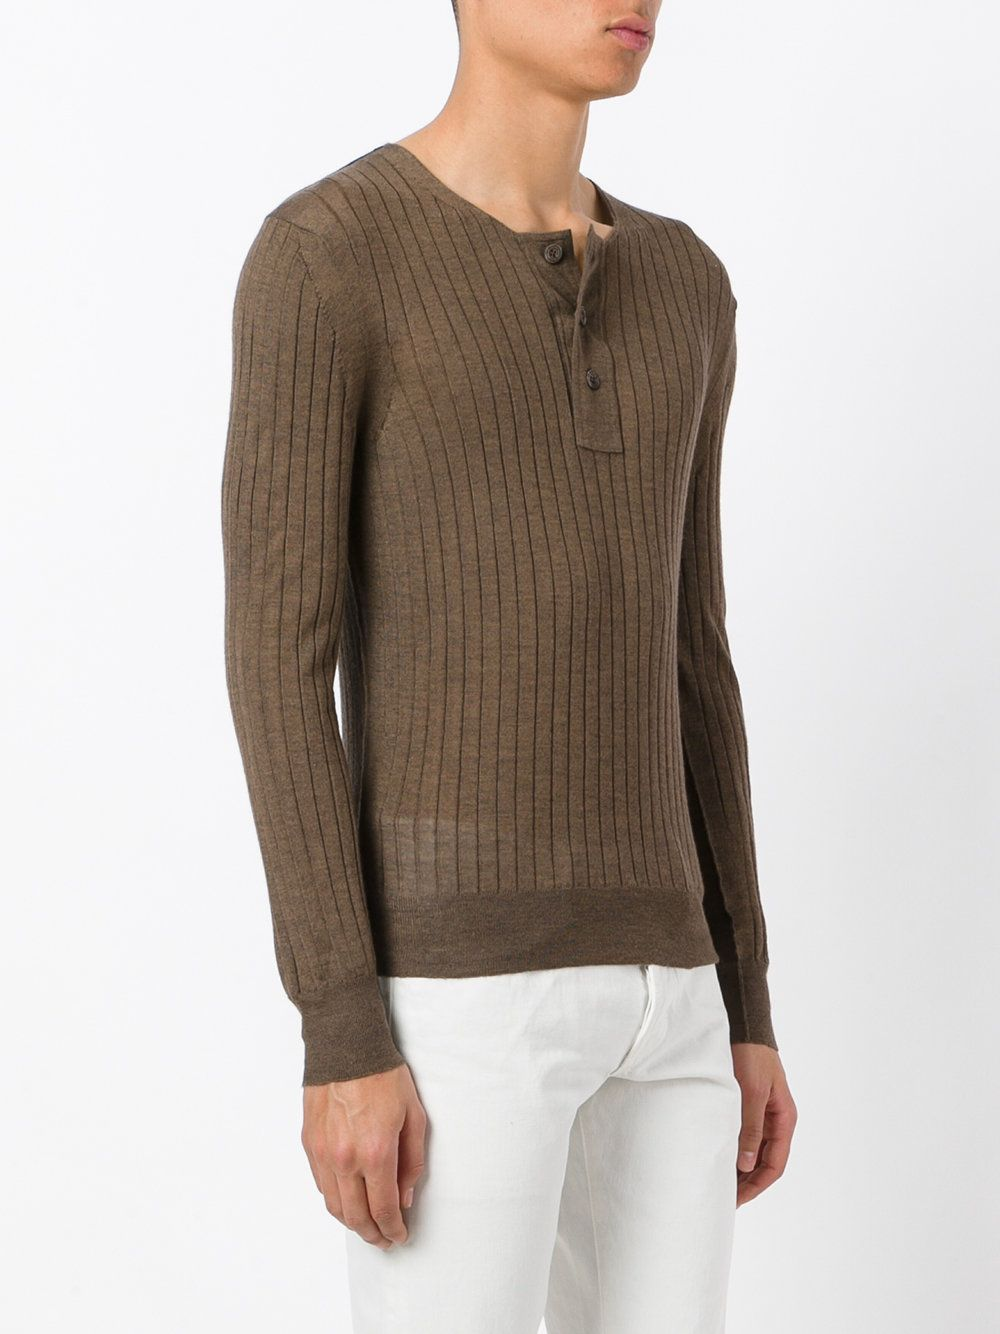 1090ce52c Tom Ford superfine long sleeved henley. Find this Pin and more on Knitwear  ...